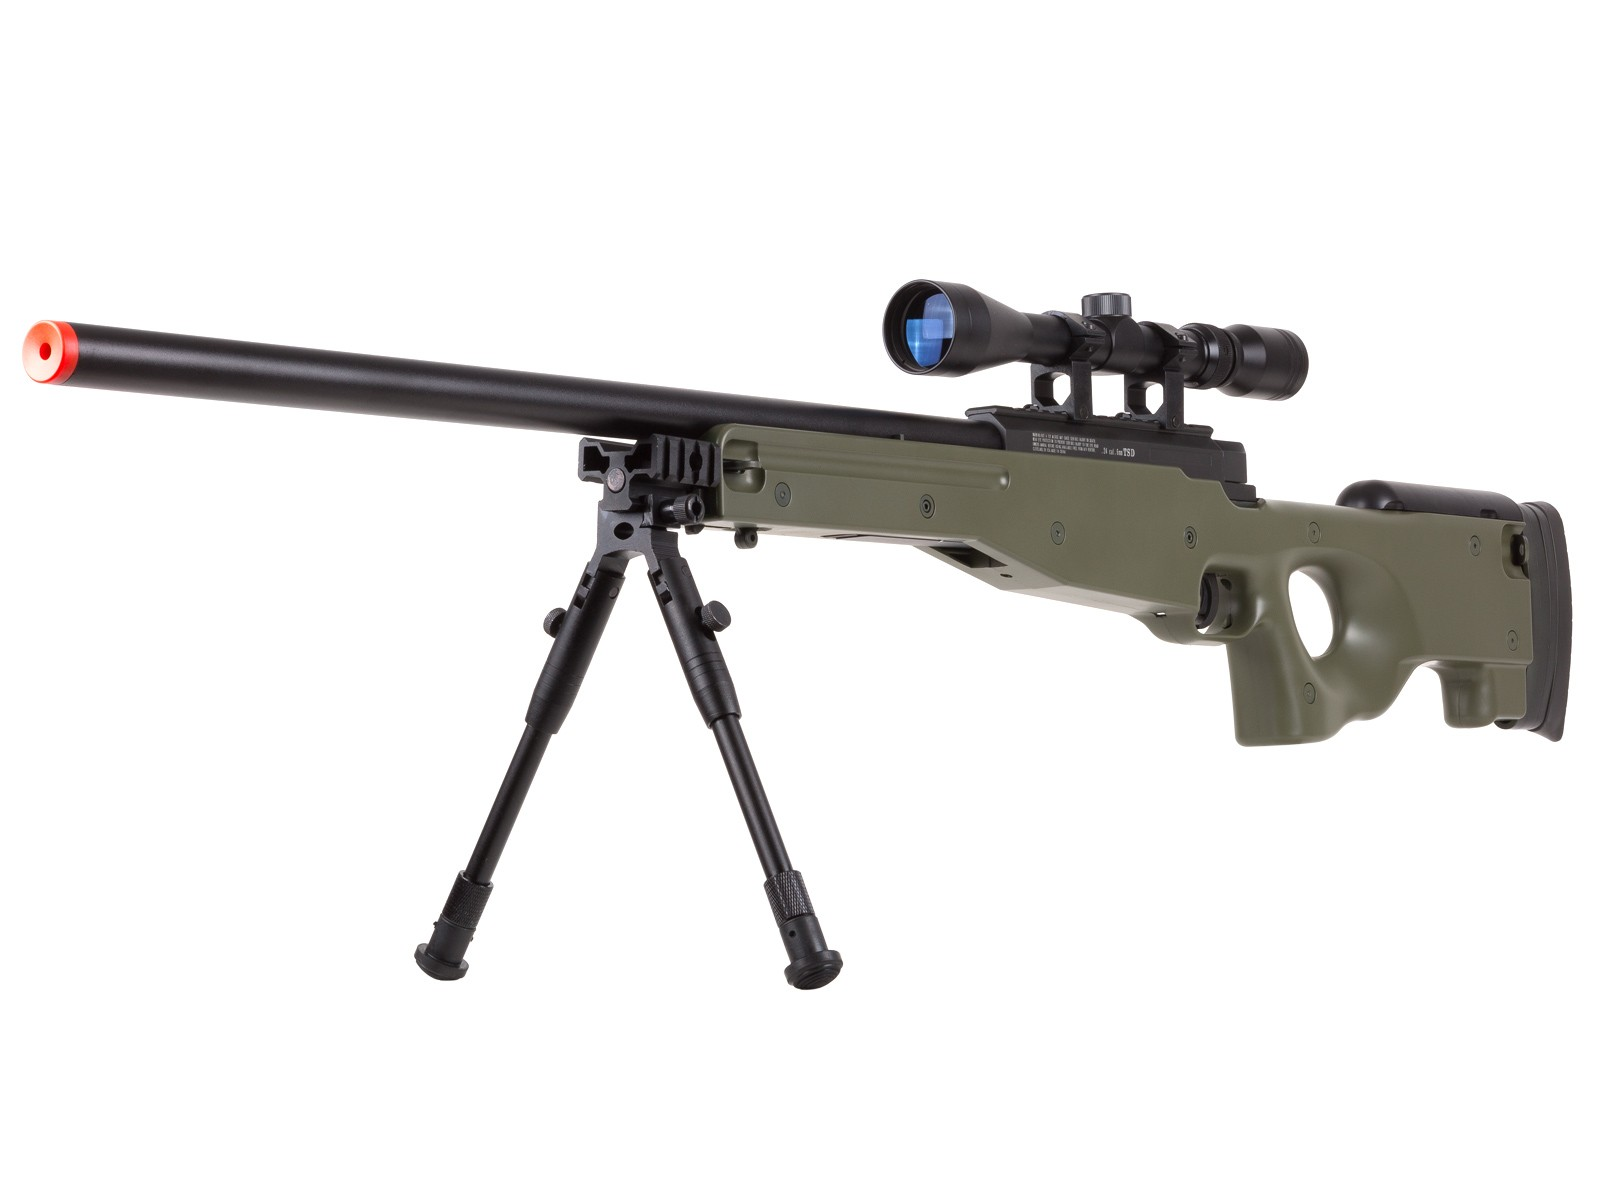 TSD_Tactical_Series_Type_96_Sniper_Green_Rifle_6mm